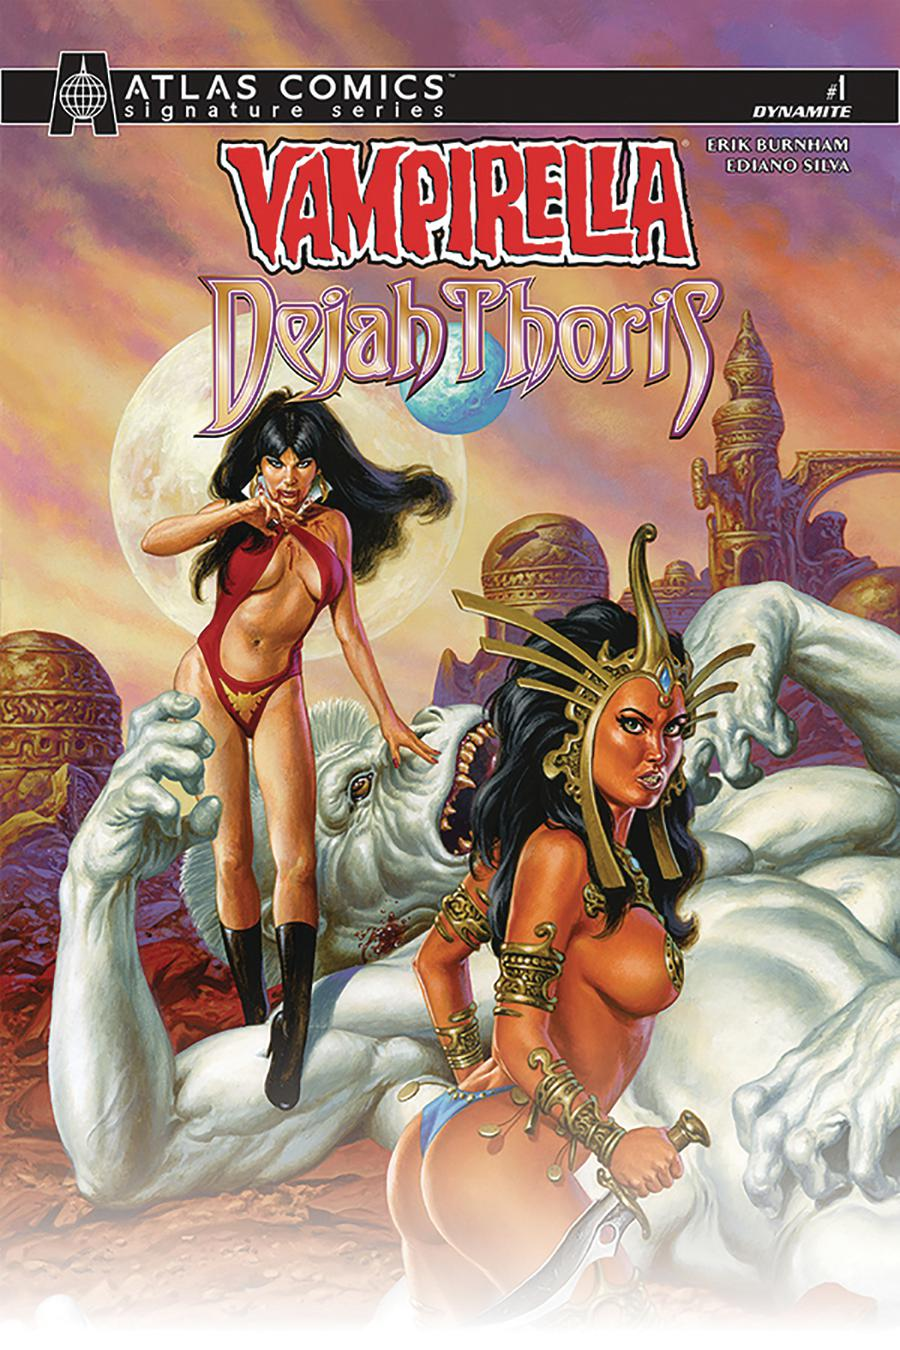 Vampirella Dejah Thoris #1 Cover N Atlas Comics Signature Series Signed By Erik Burnham